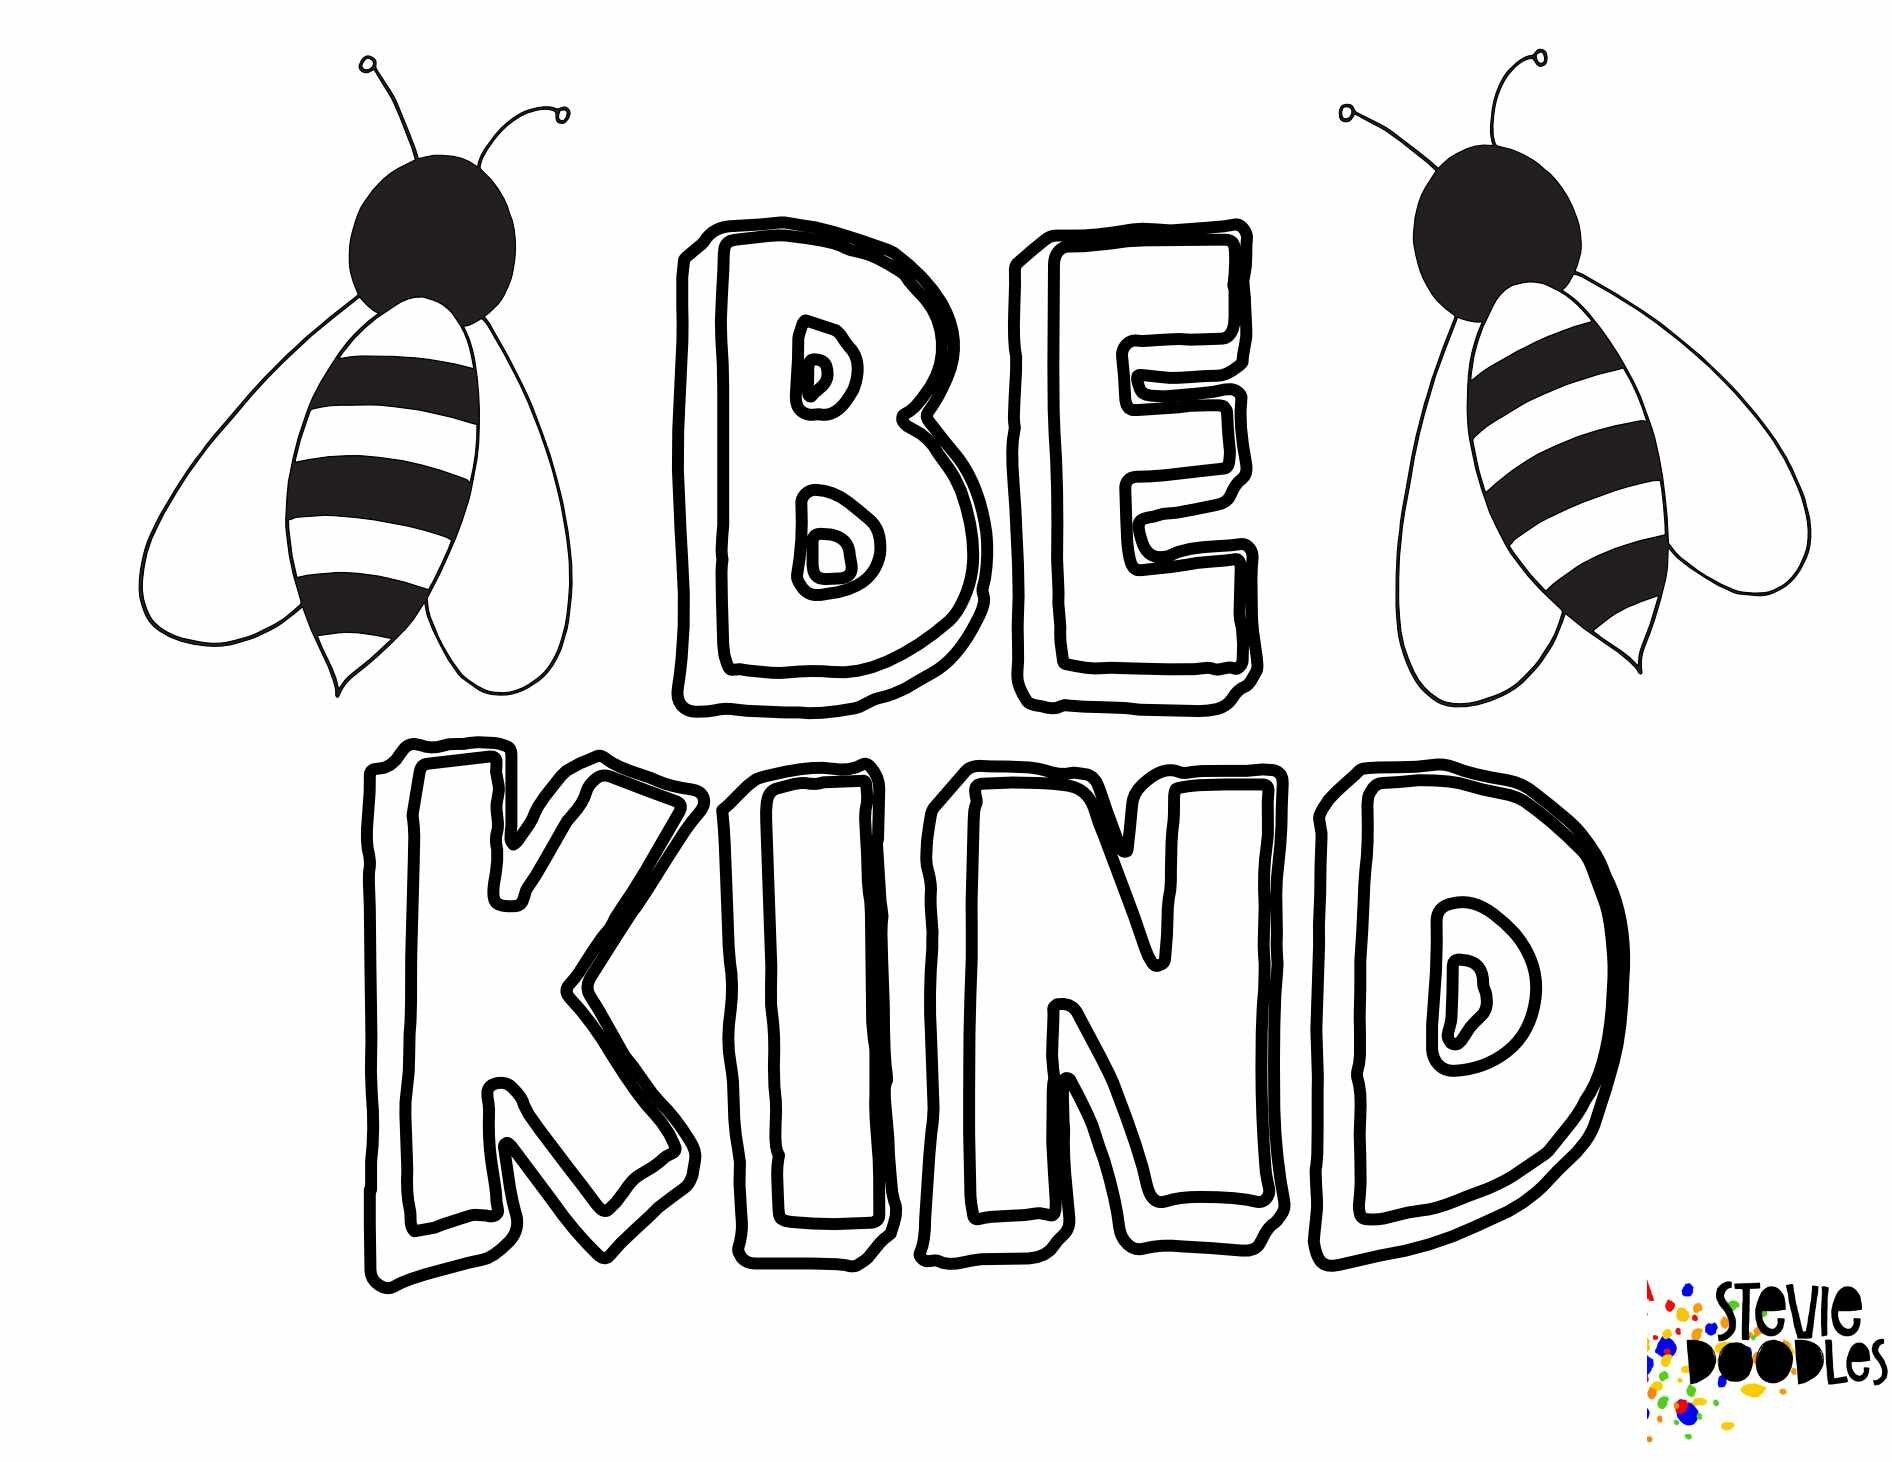 6 Free Be Kind Printable Coloring Pages Stevie Doodles Bee Coloring Pages Kindergarten Coloring Pages Printable Coloring